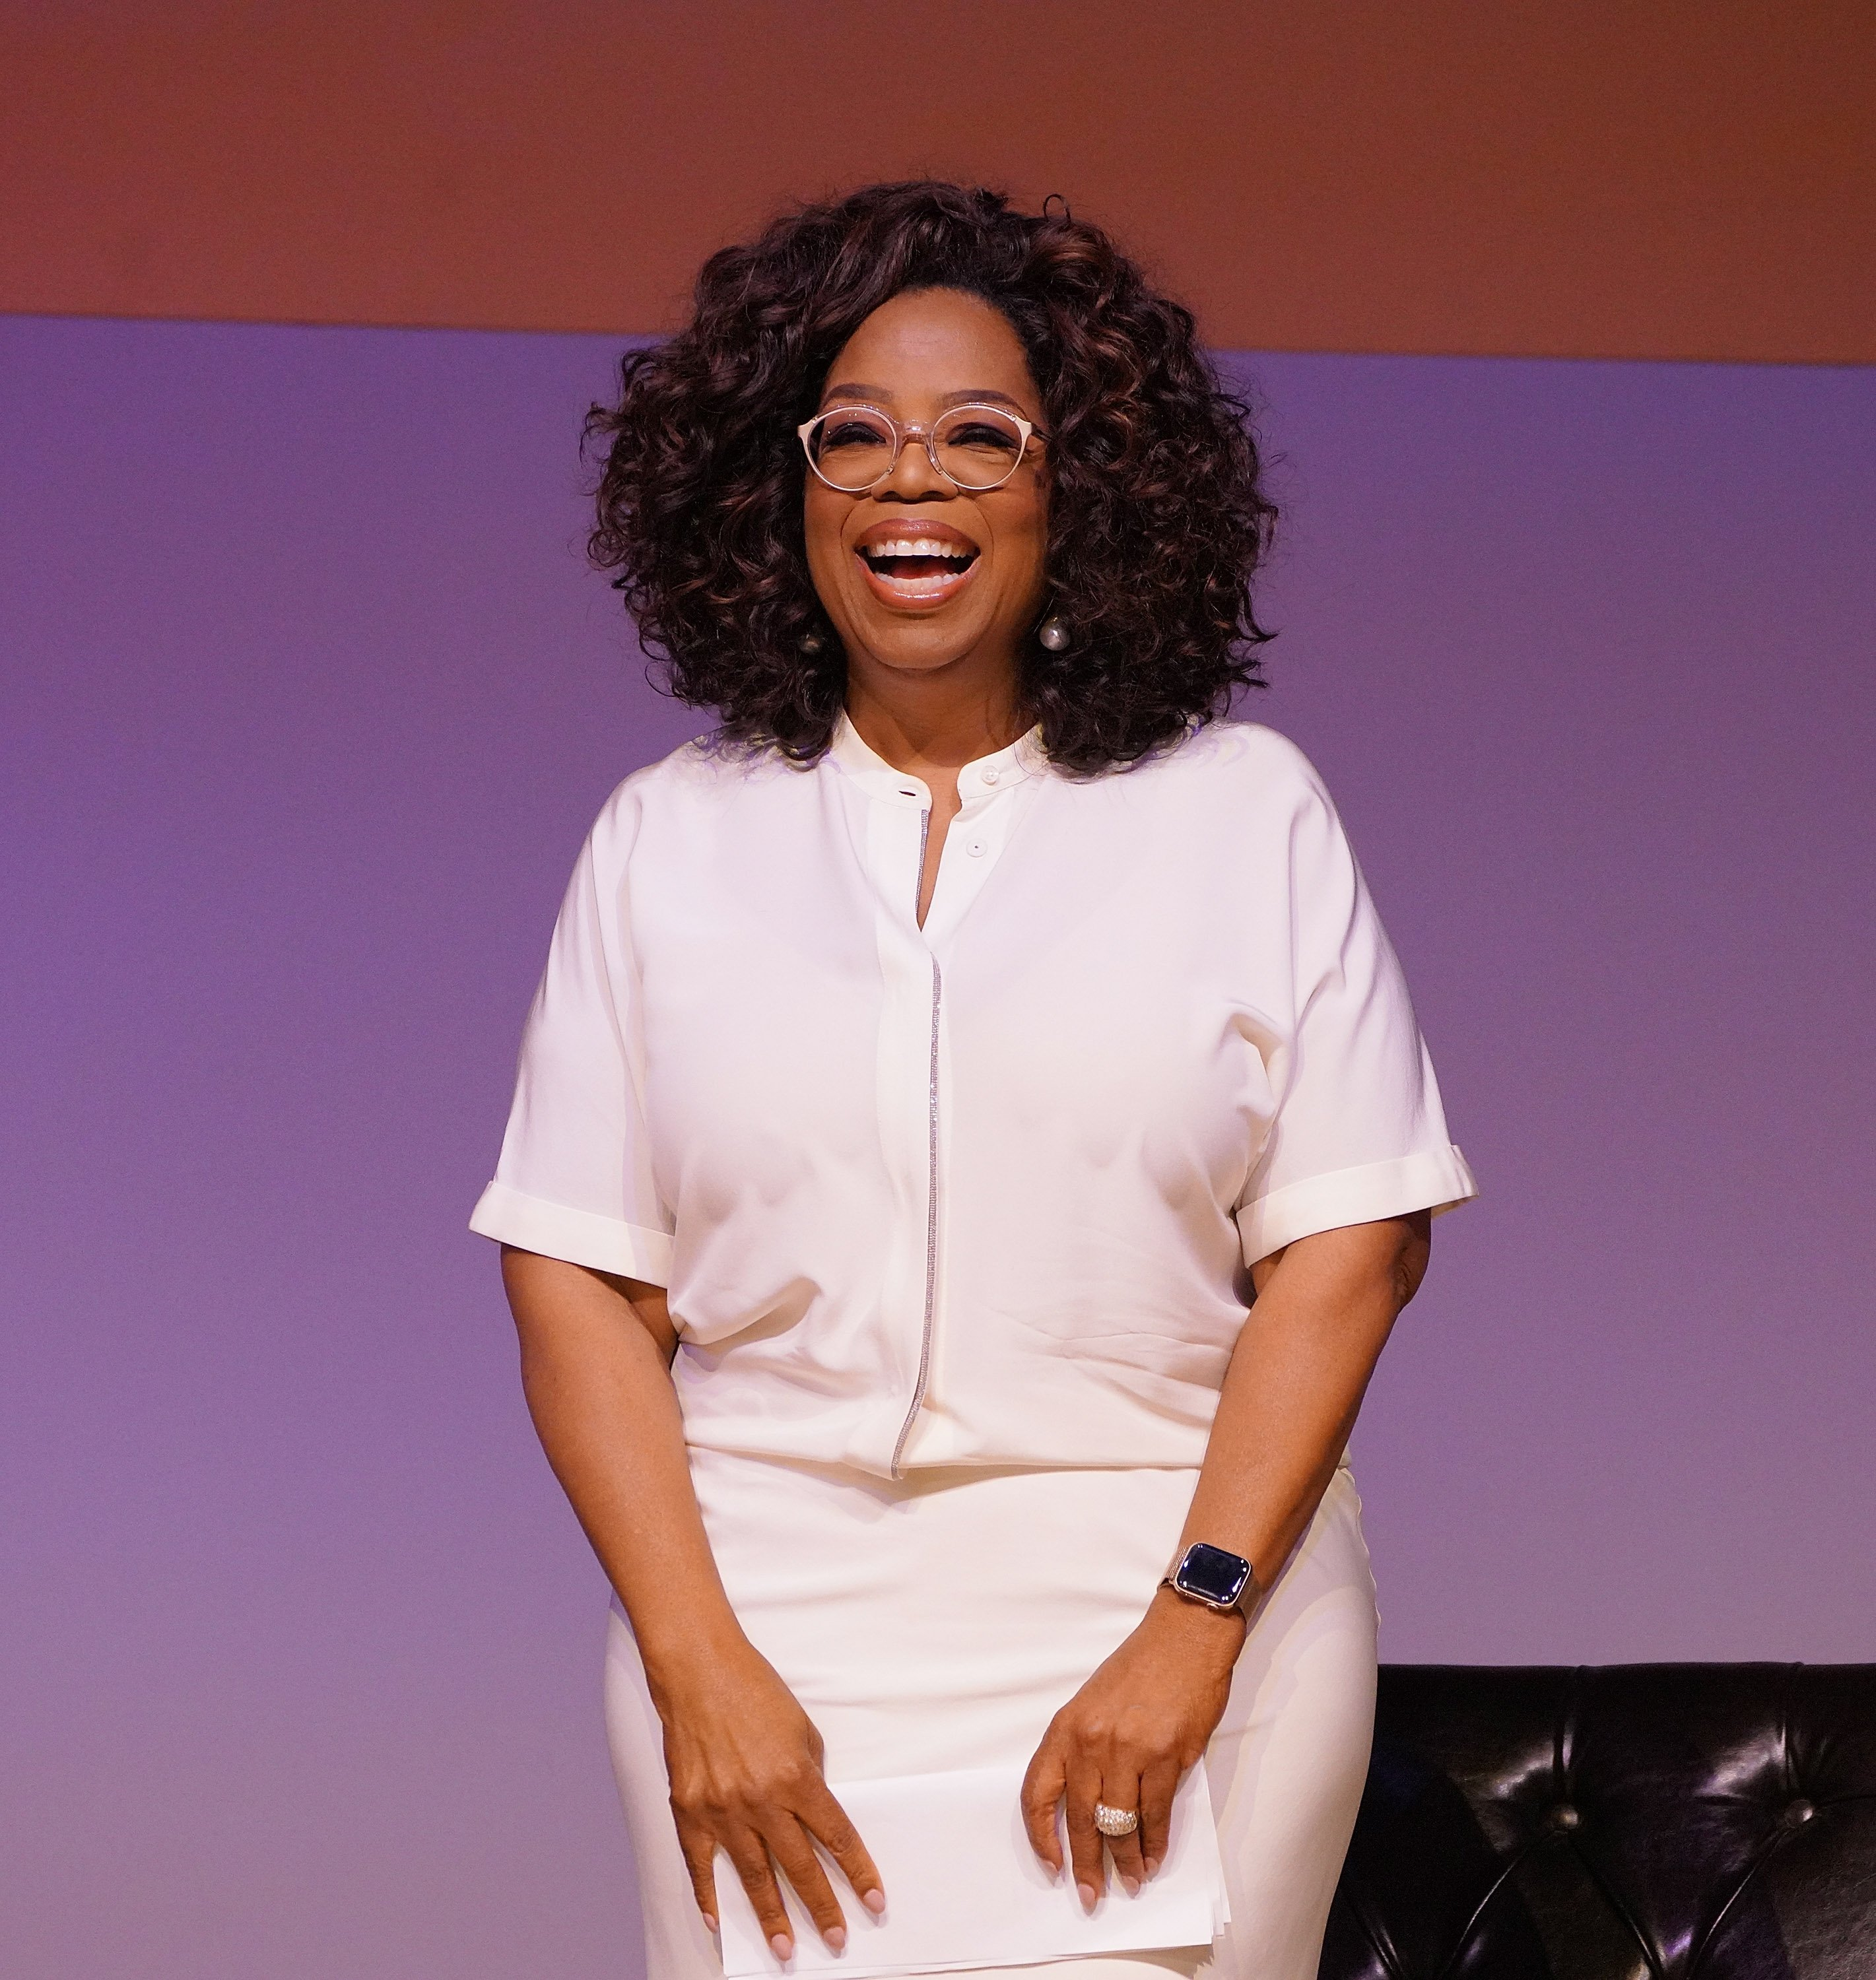 Oprah Winfrey at The University of Johannesburg on Nov. 29, 2018 | Photo: Getty Images